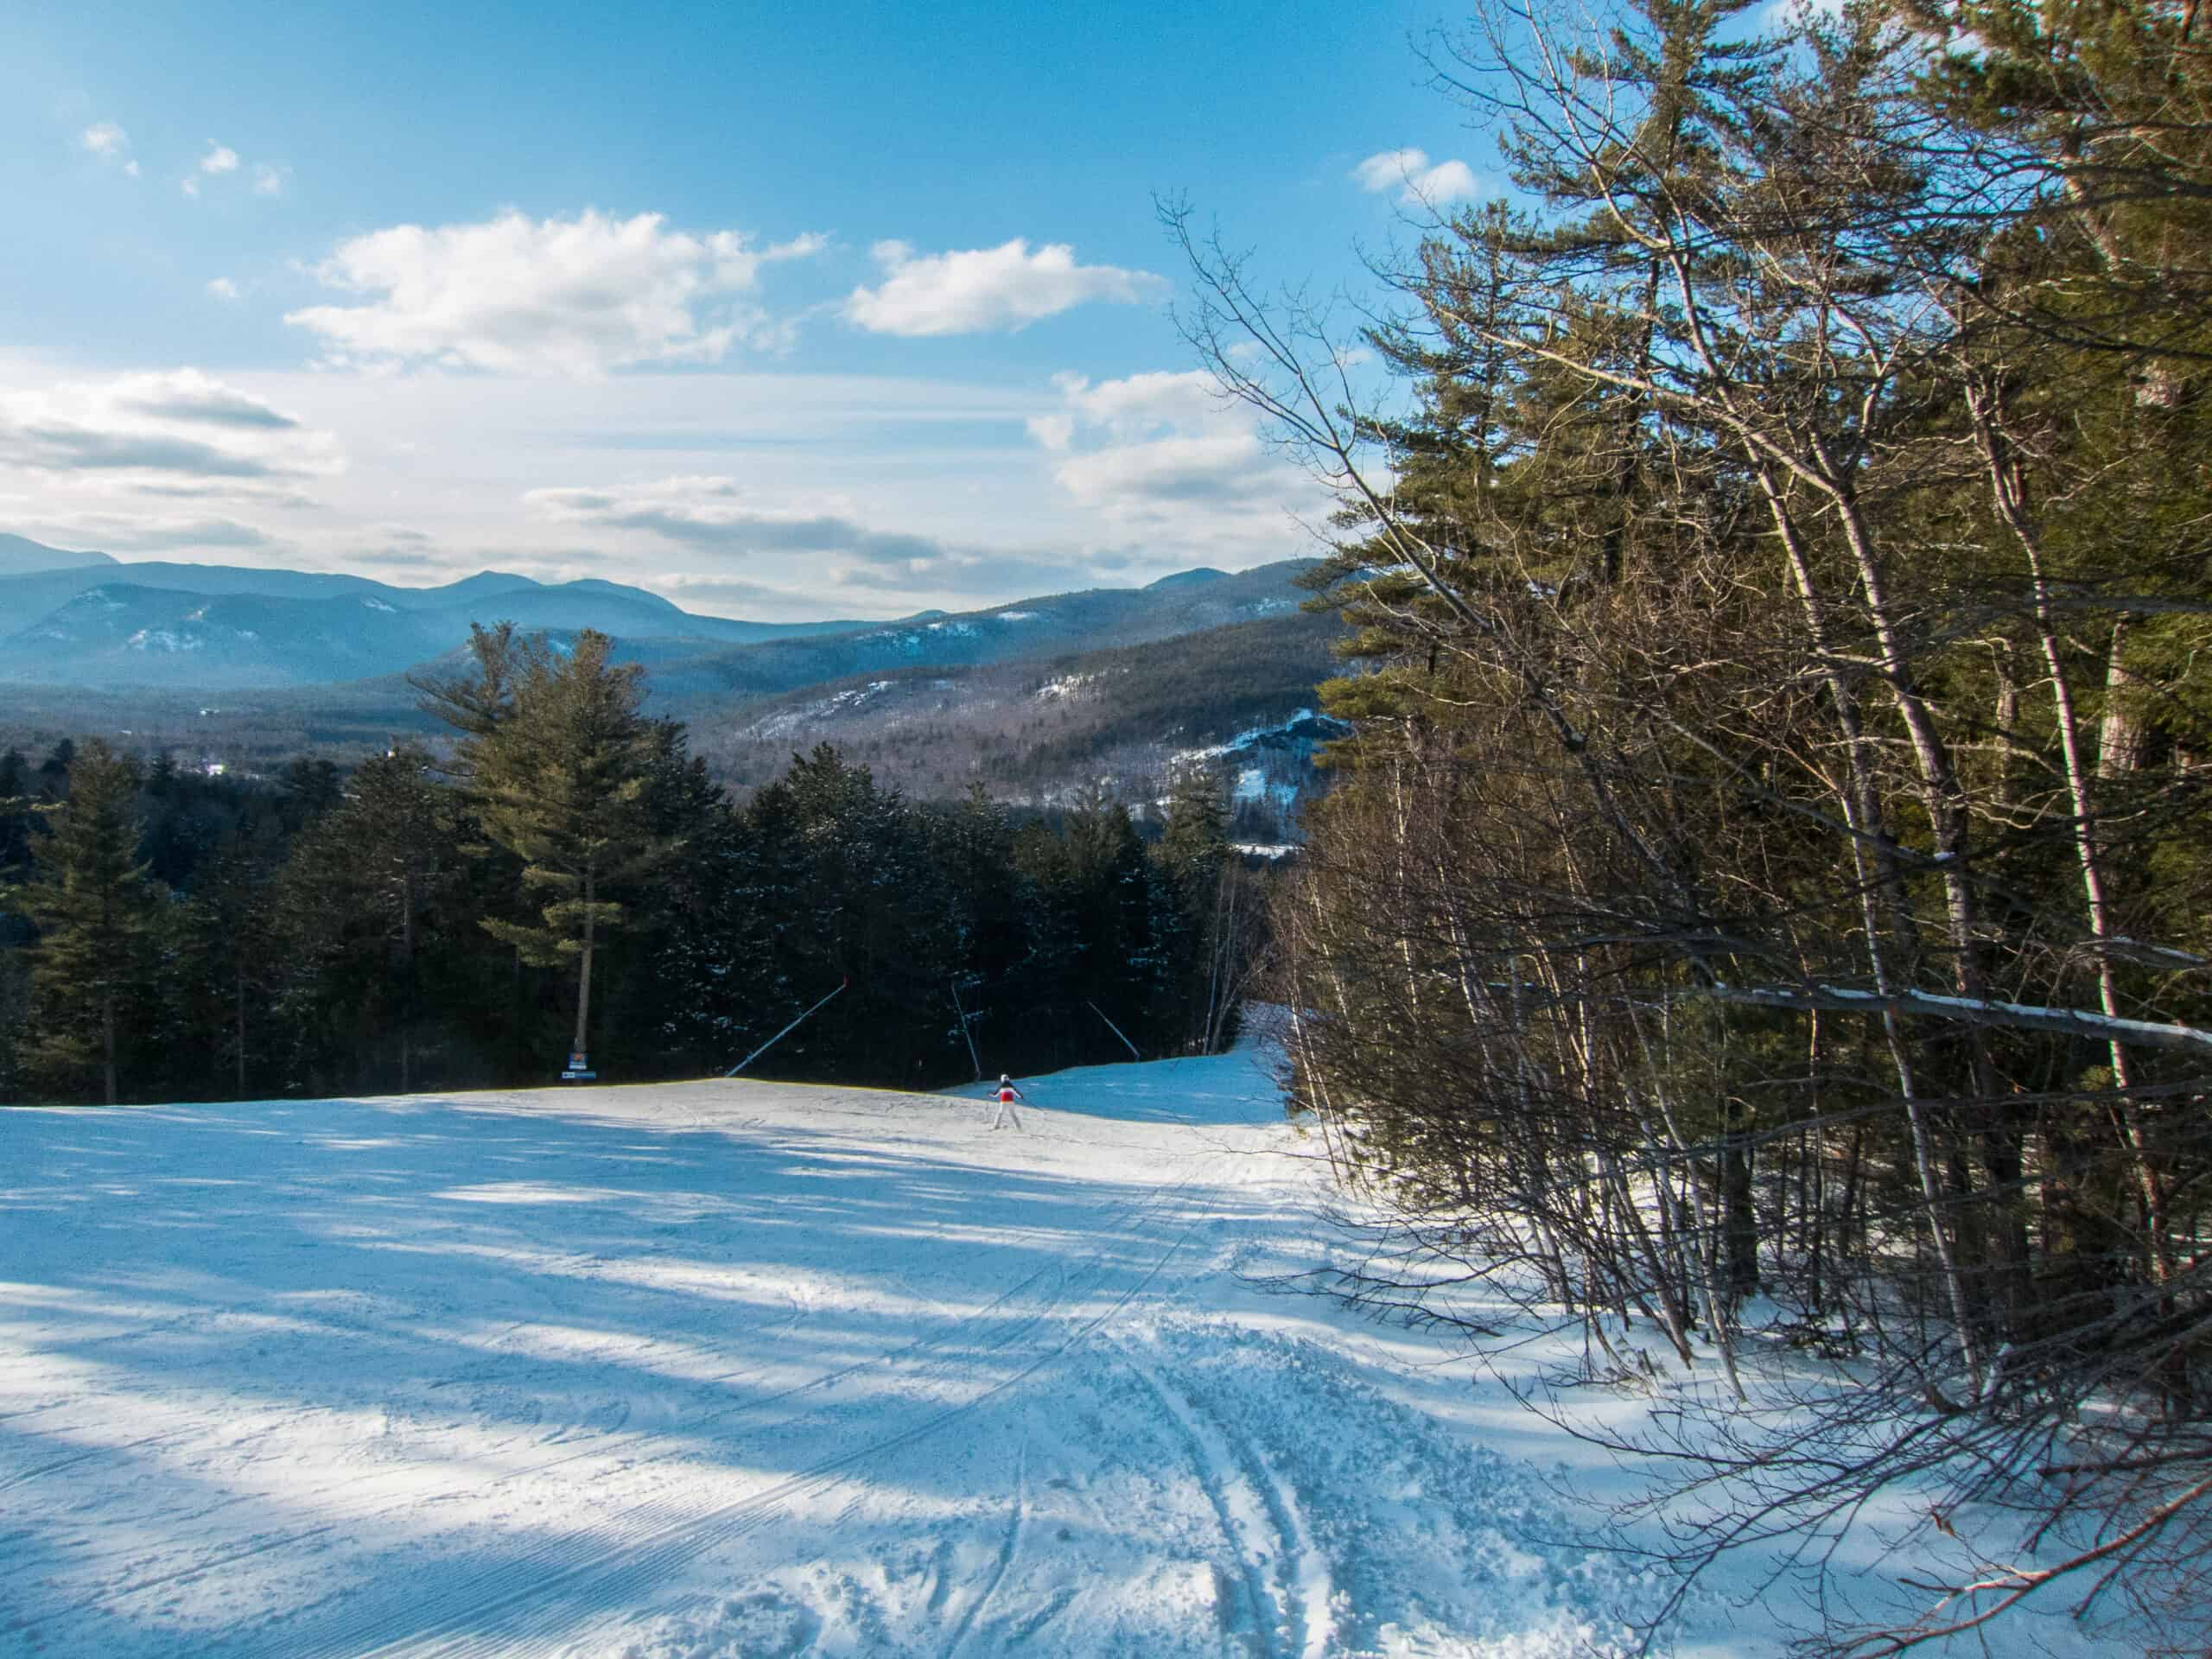 best ski resorts in NH - image of sunny day on a sleek snowy mountain, blue sky in distance